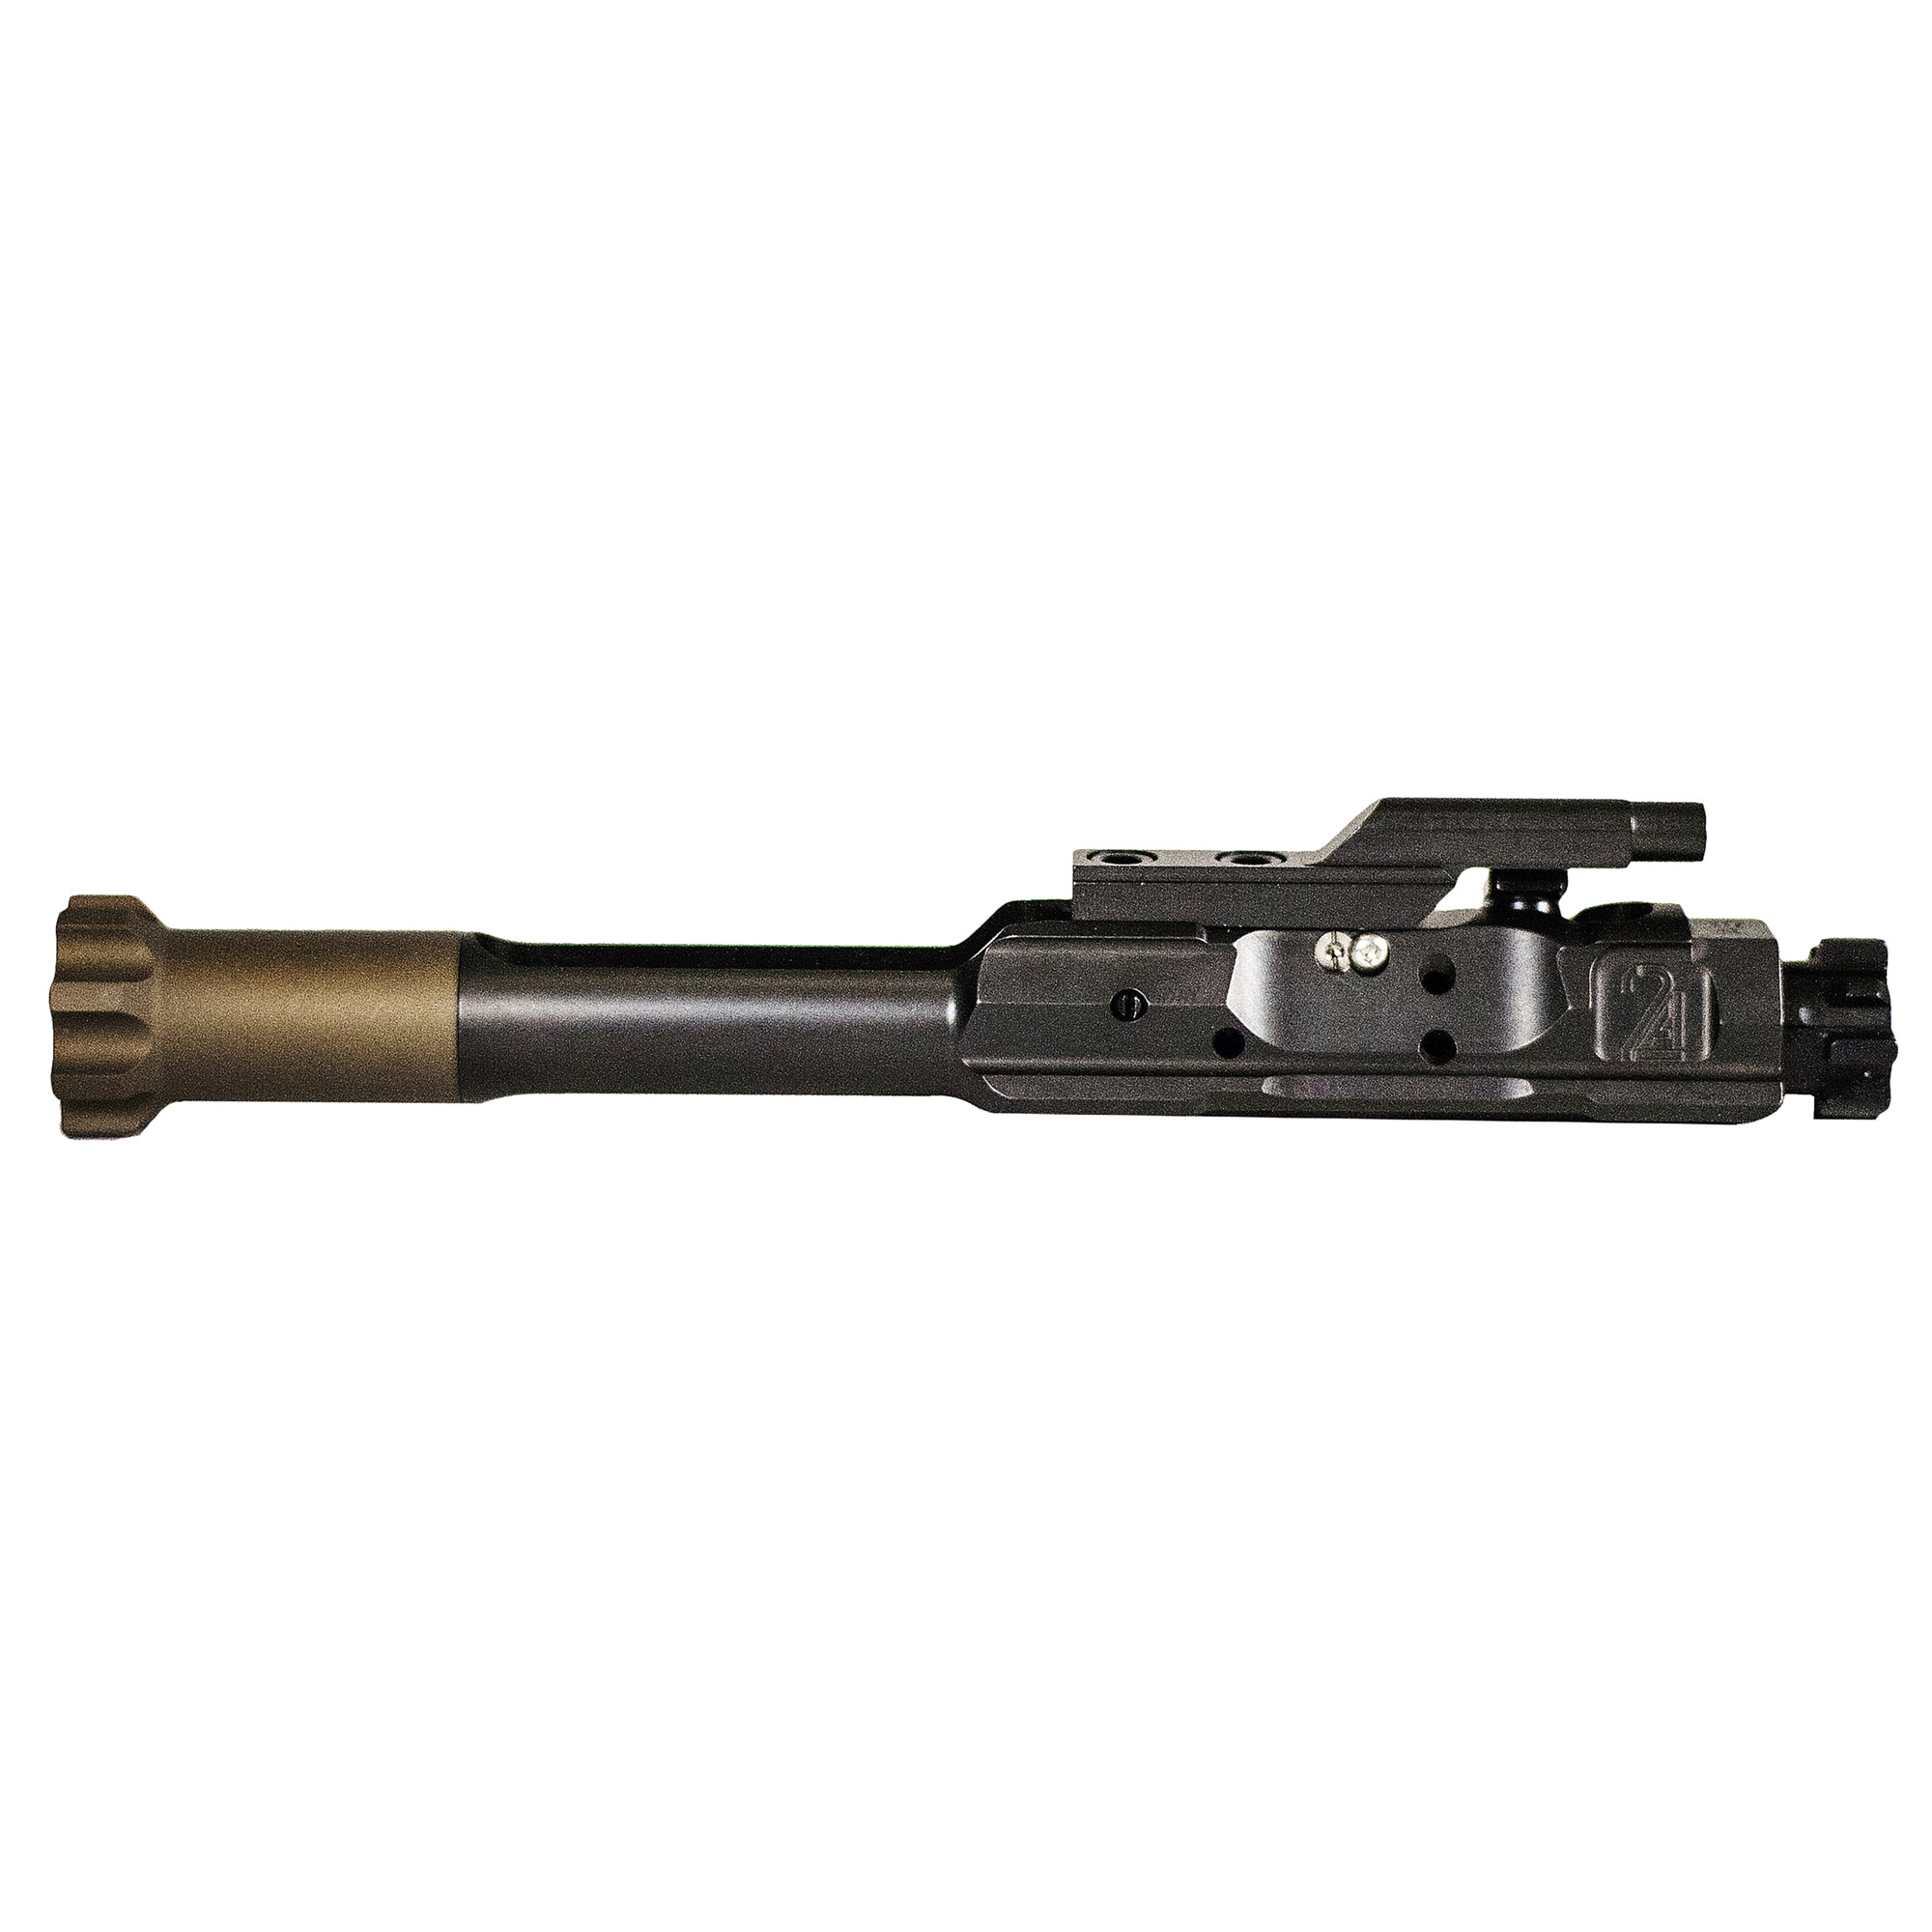 "The Titanium Regulated Bolt Carrier (RBC) is an ultra-lightweight carrier with a gas regulating gate built into the carrier itself. This provides a drop in"" extremely lightweight solution for those looking to tune their AR-15's gas system and minimize felt recoil. It eliminates the need for adjustable gas blocks and allows the firearm to be restored to a factory full weight system by simply swapping the full-mass carrier back into the firearm. The RBC has infinite adjustment from fully open"" to fully closed on the regulating gate. The RBC can be tuned to most combinations of buffers"" springs"" suppressors"" and barrel lengths. The RBC Is fully adjustable through the port door and does not require the firearm to be broken down for adjustment."